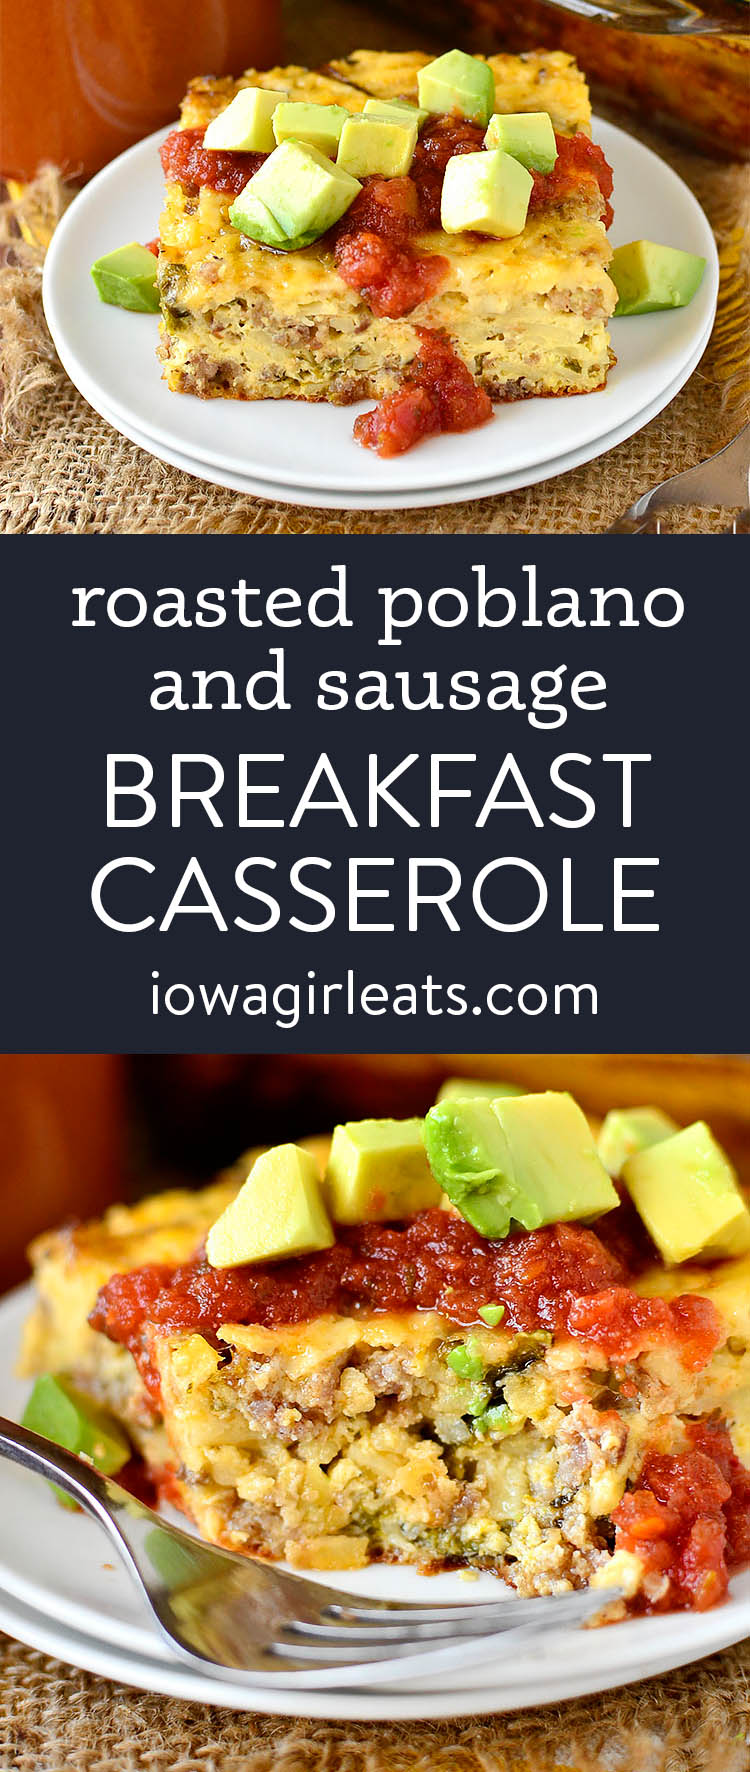 photo collage of roasted poblano and sausage breakfast casserole